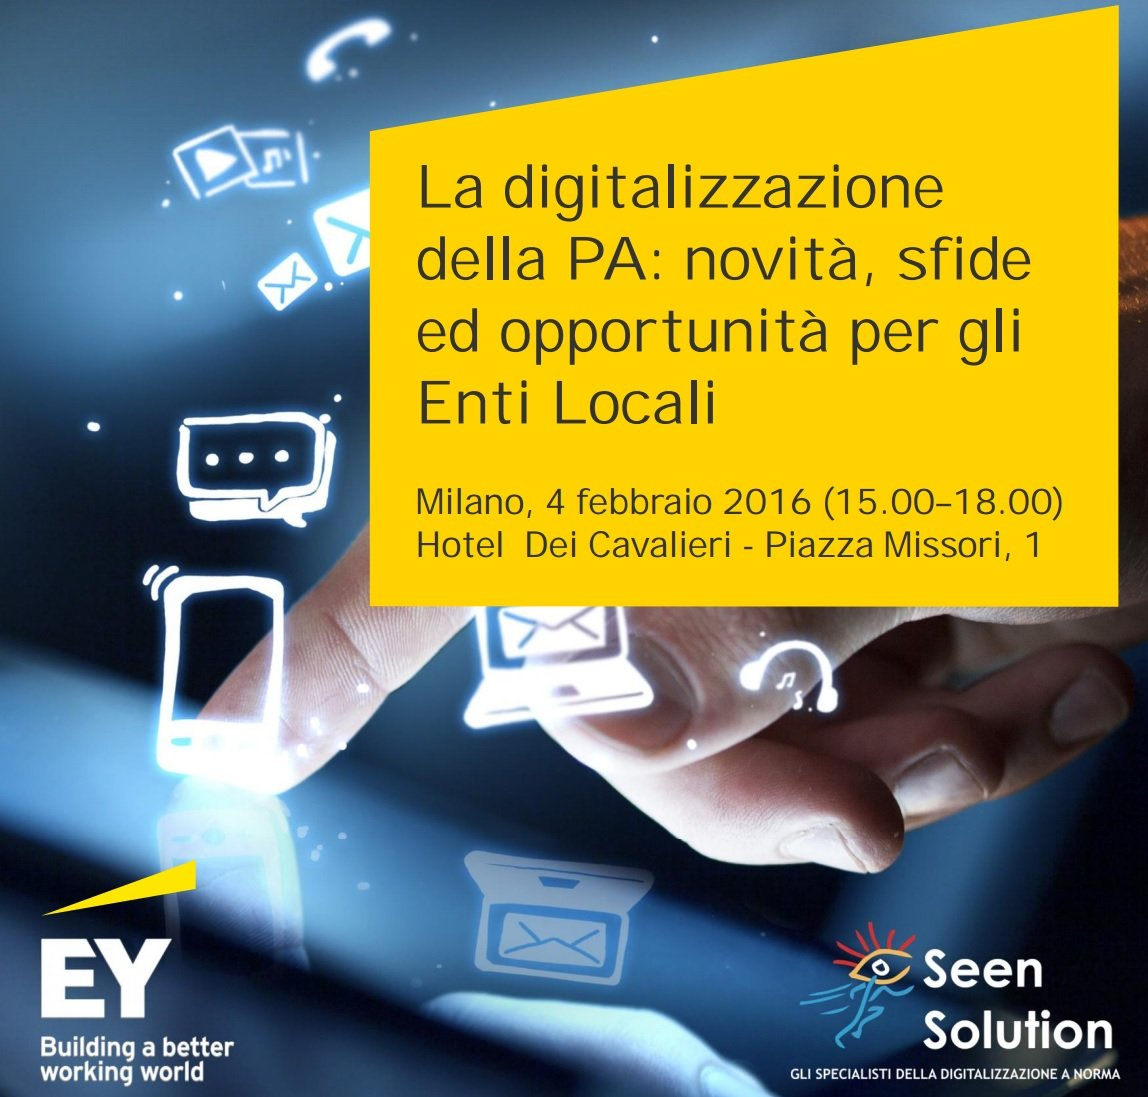 Ernst & Young e Seen Solution siglano alleanza per il digitale: Convegno